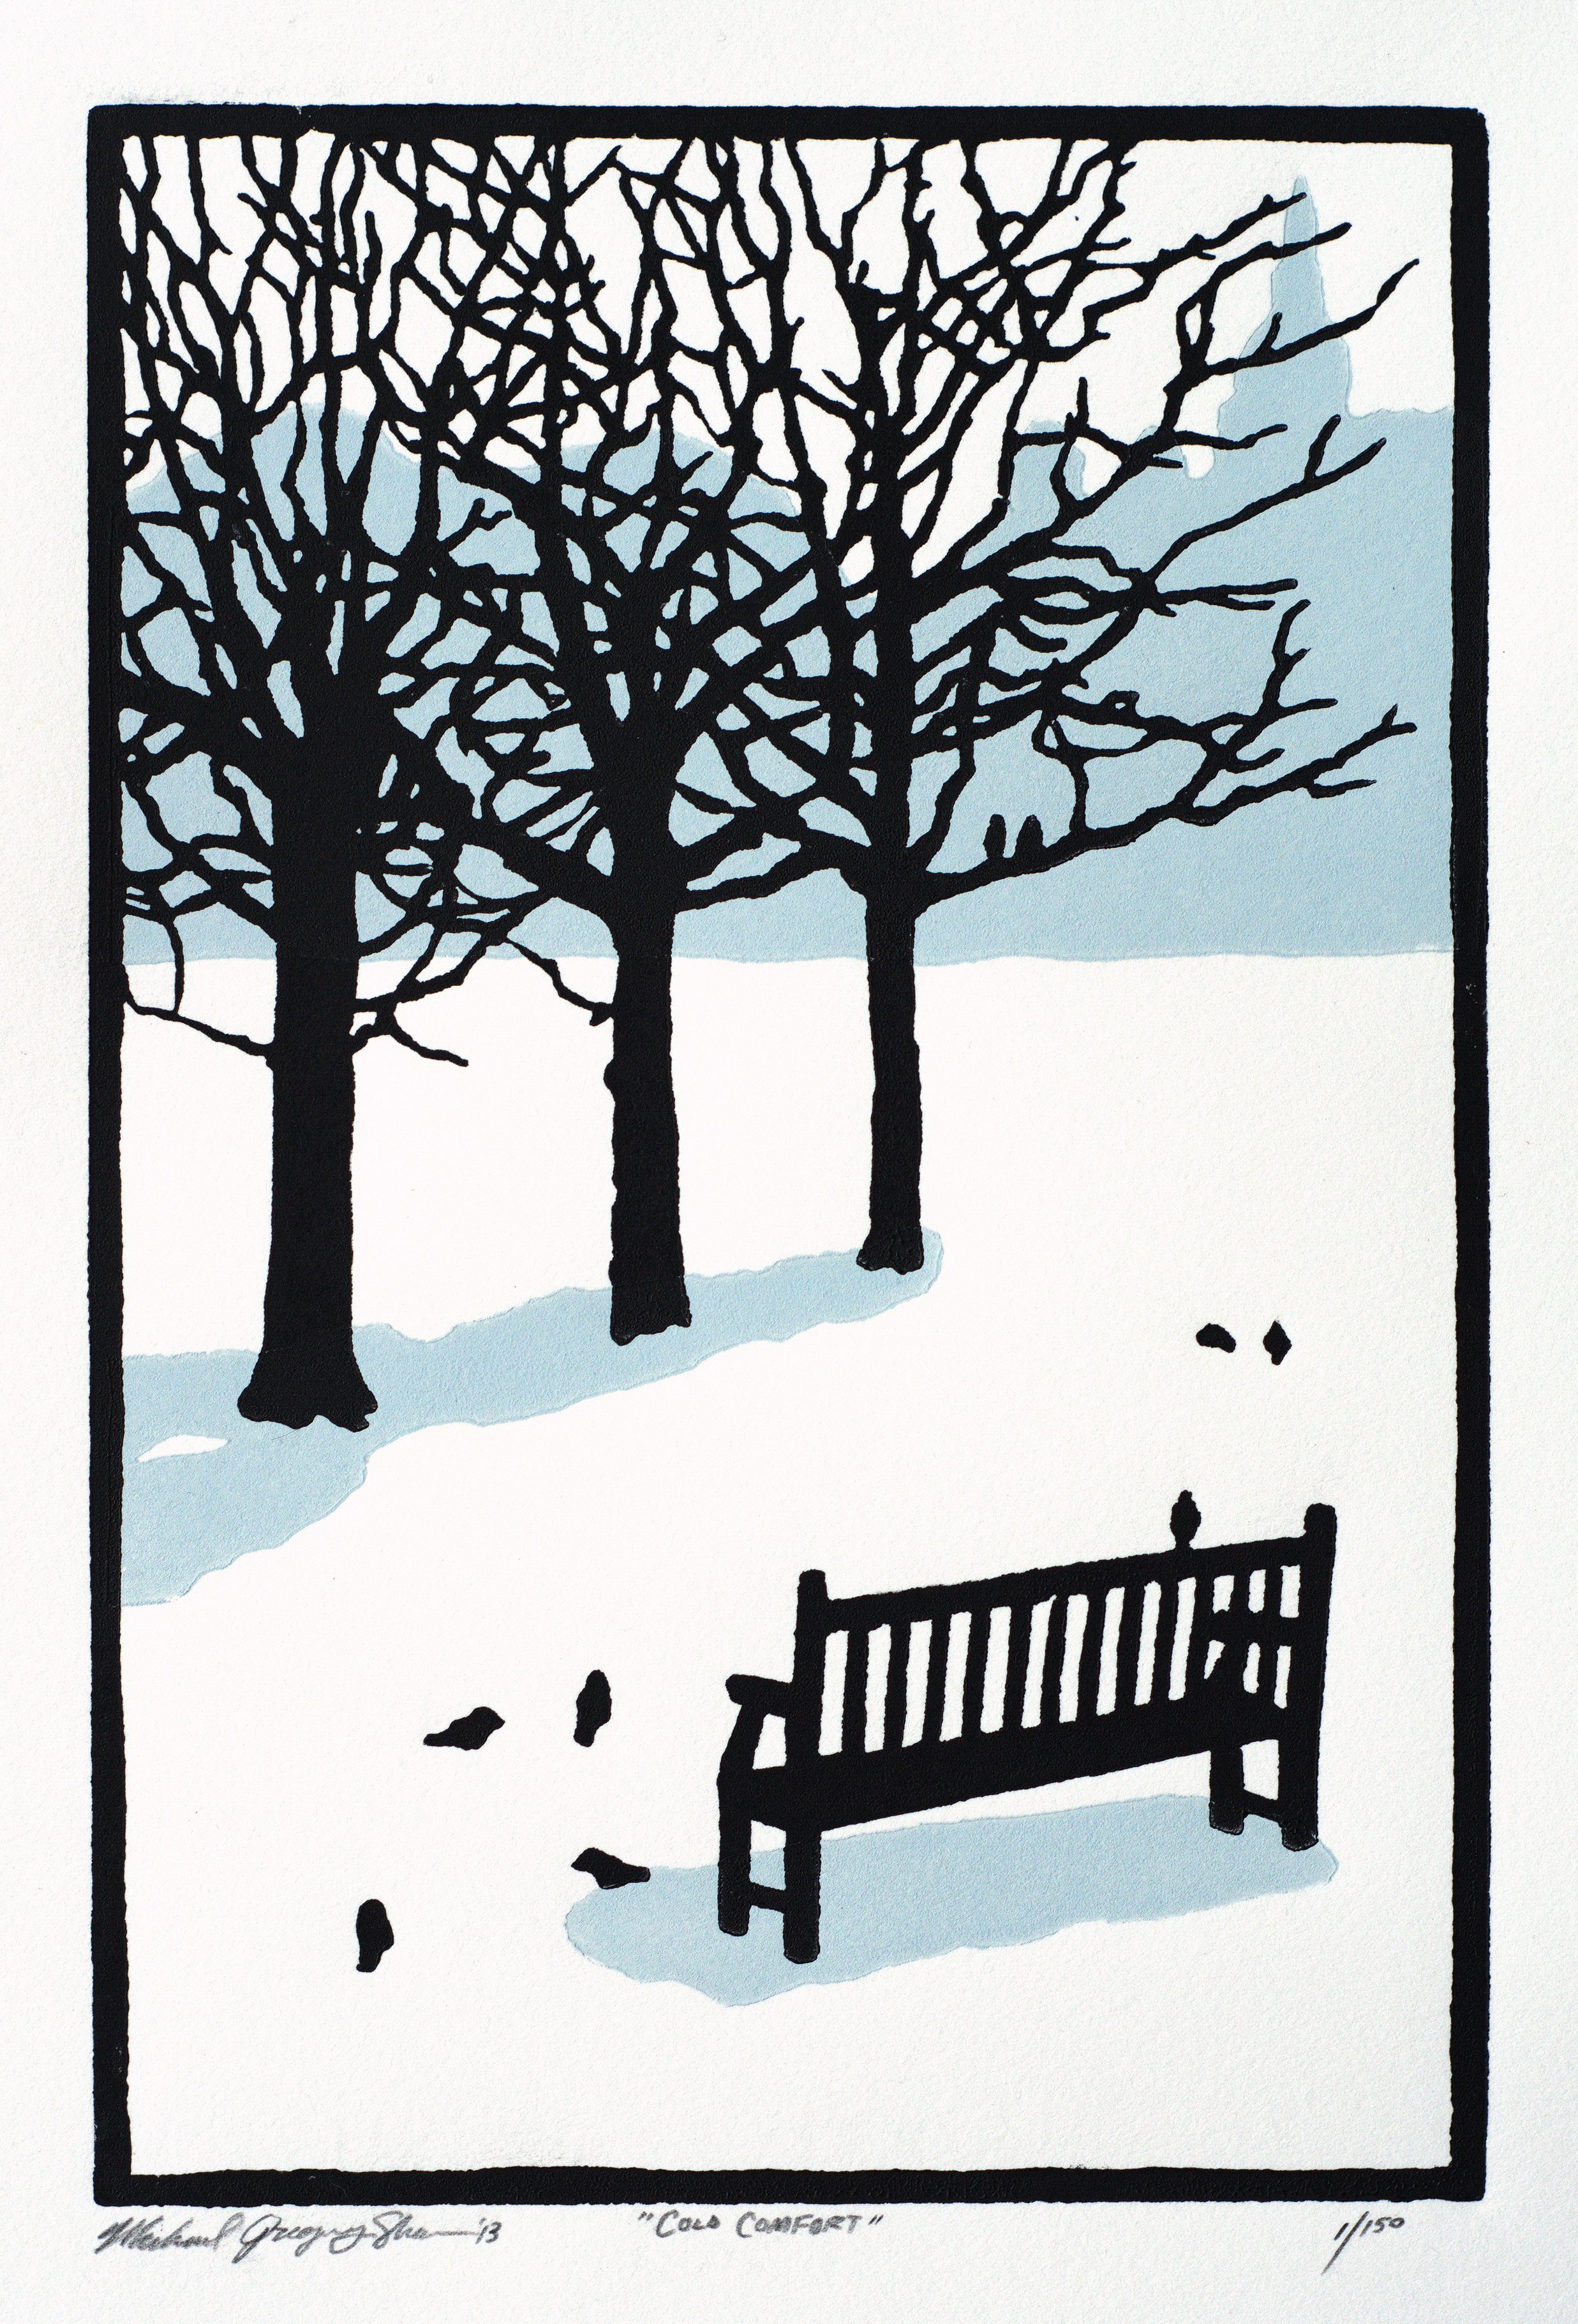 """Cold Comfort  , 2013. Linoleum block print 6 x 9"""", edition of 150.  Sold out."""